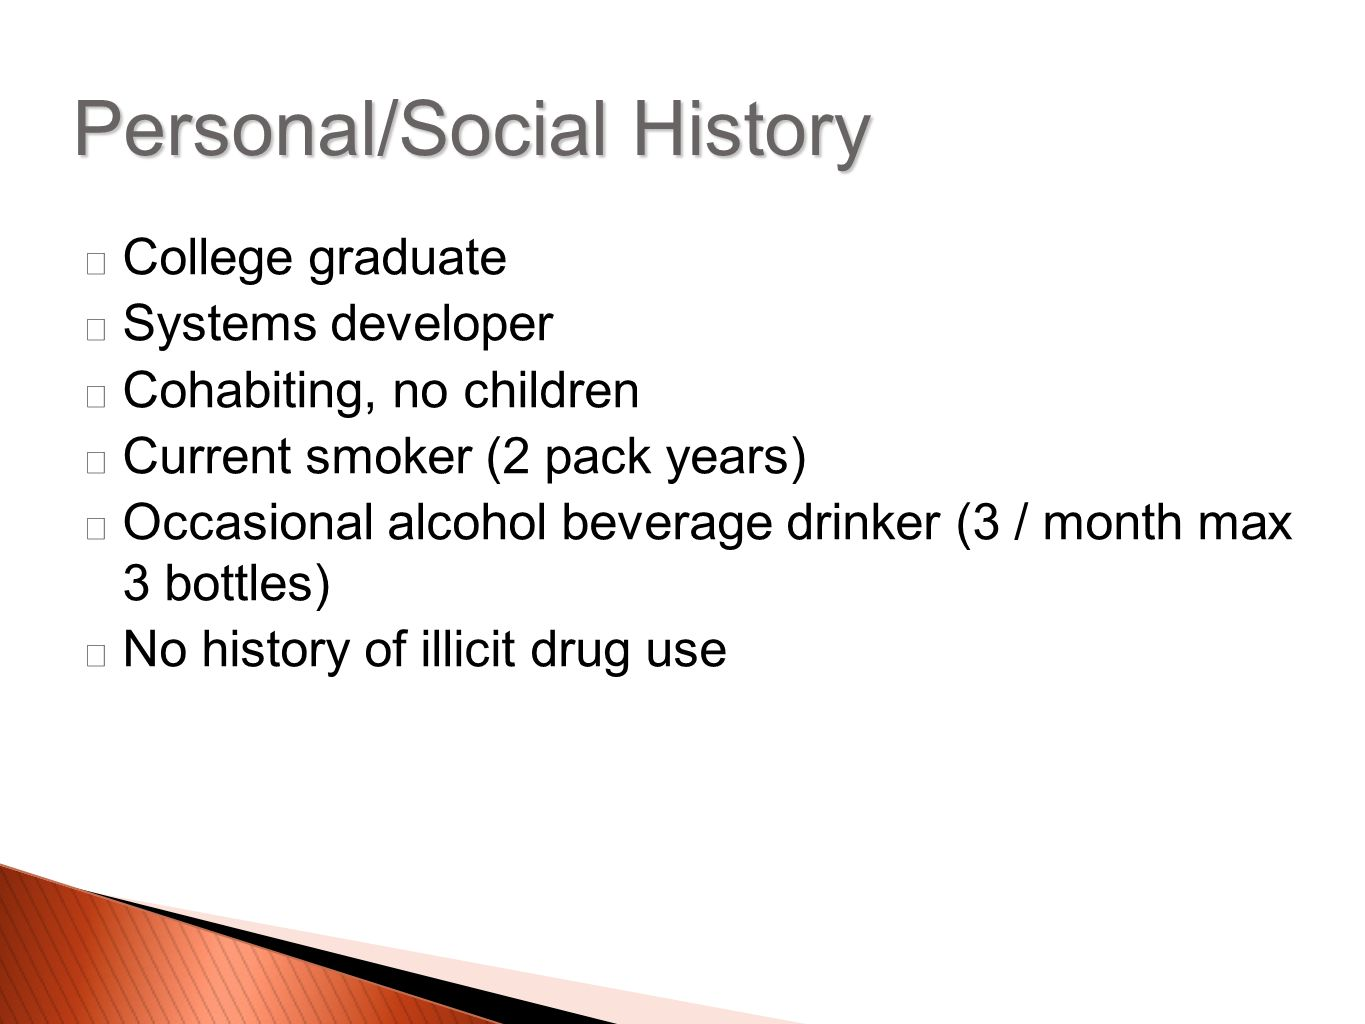 College graduate Systems developer Cohabiting, no children Current smoker (2 pack years) Occasional alcohol beverage drinker (3 / month max 3 bottles) No history of illicit drug use Personal/Social History